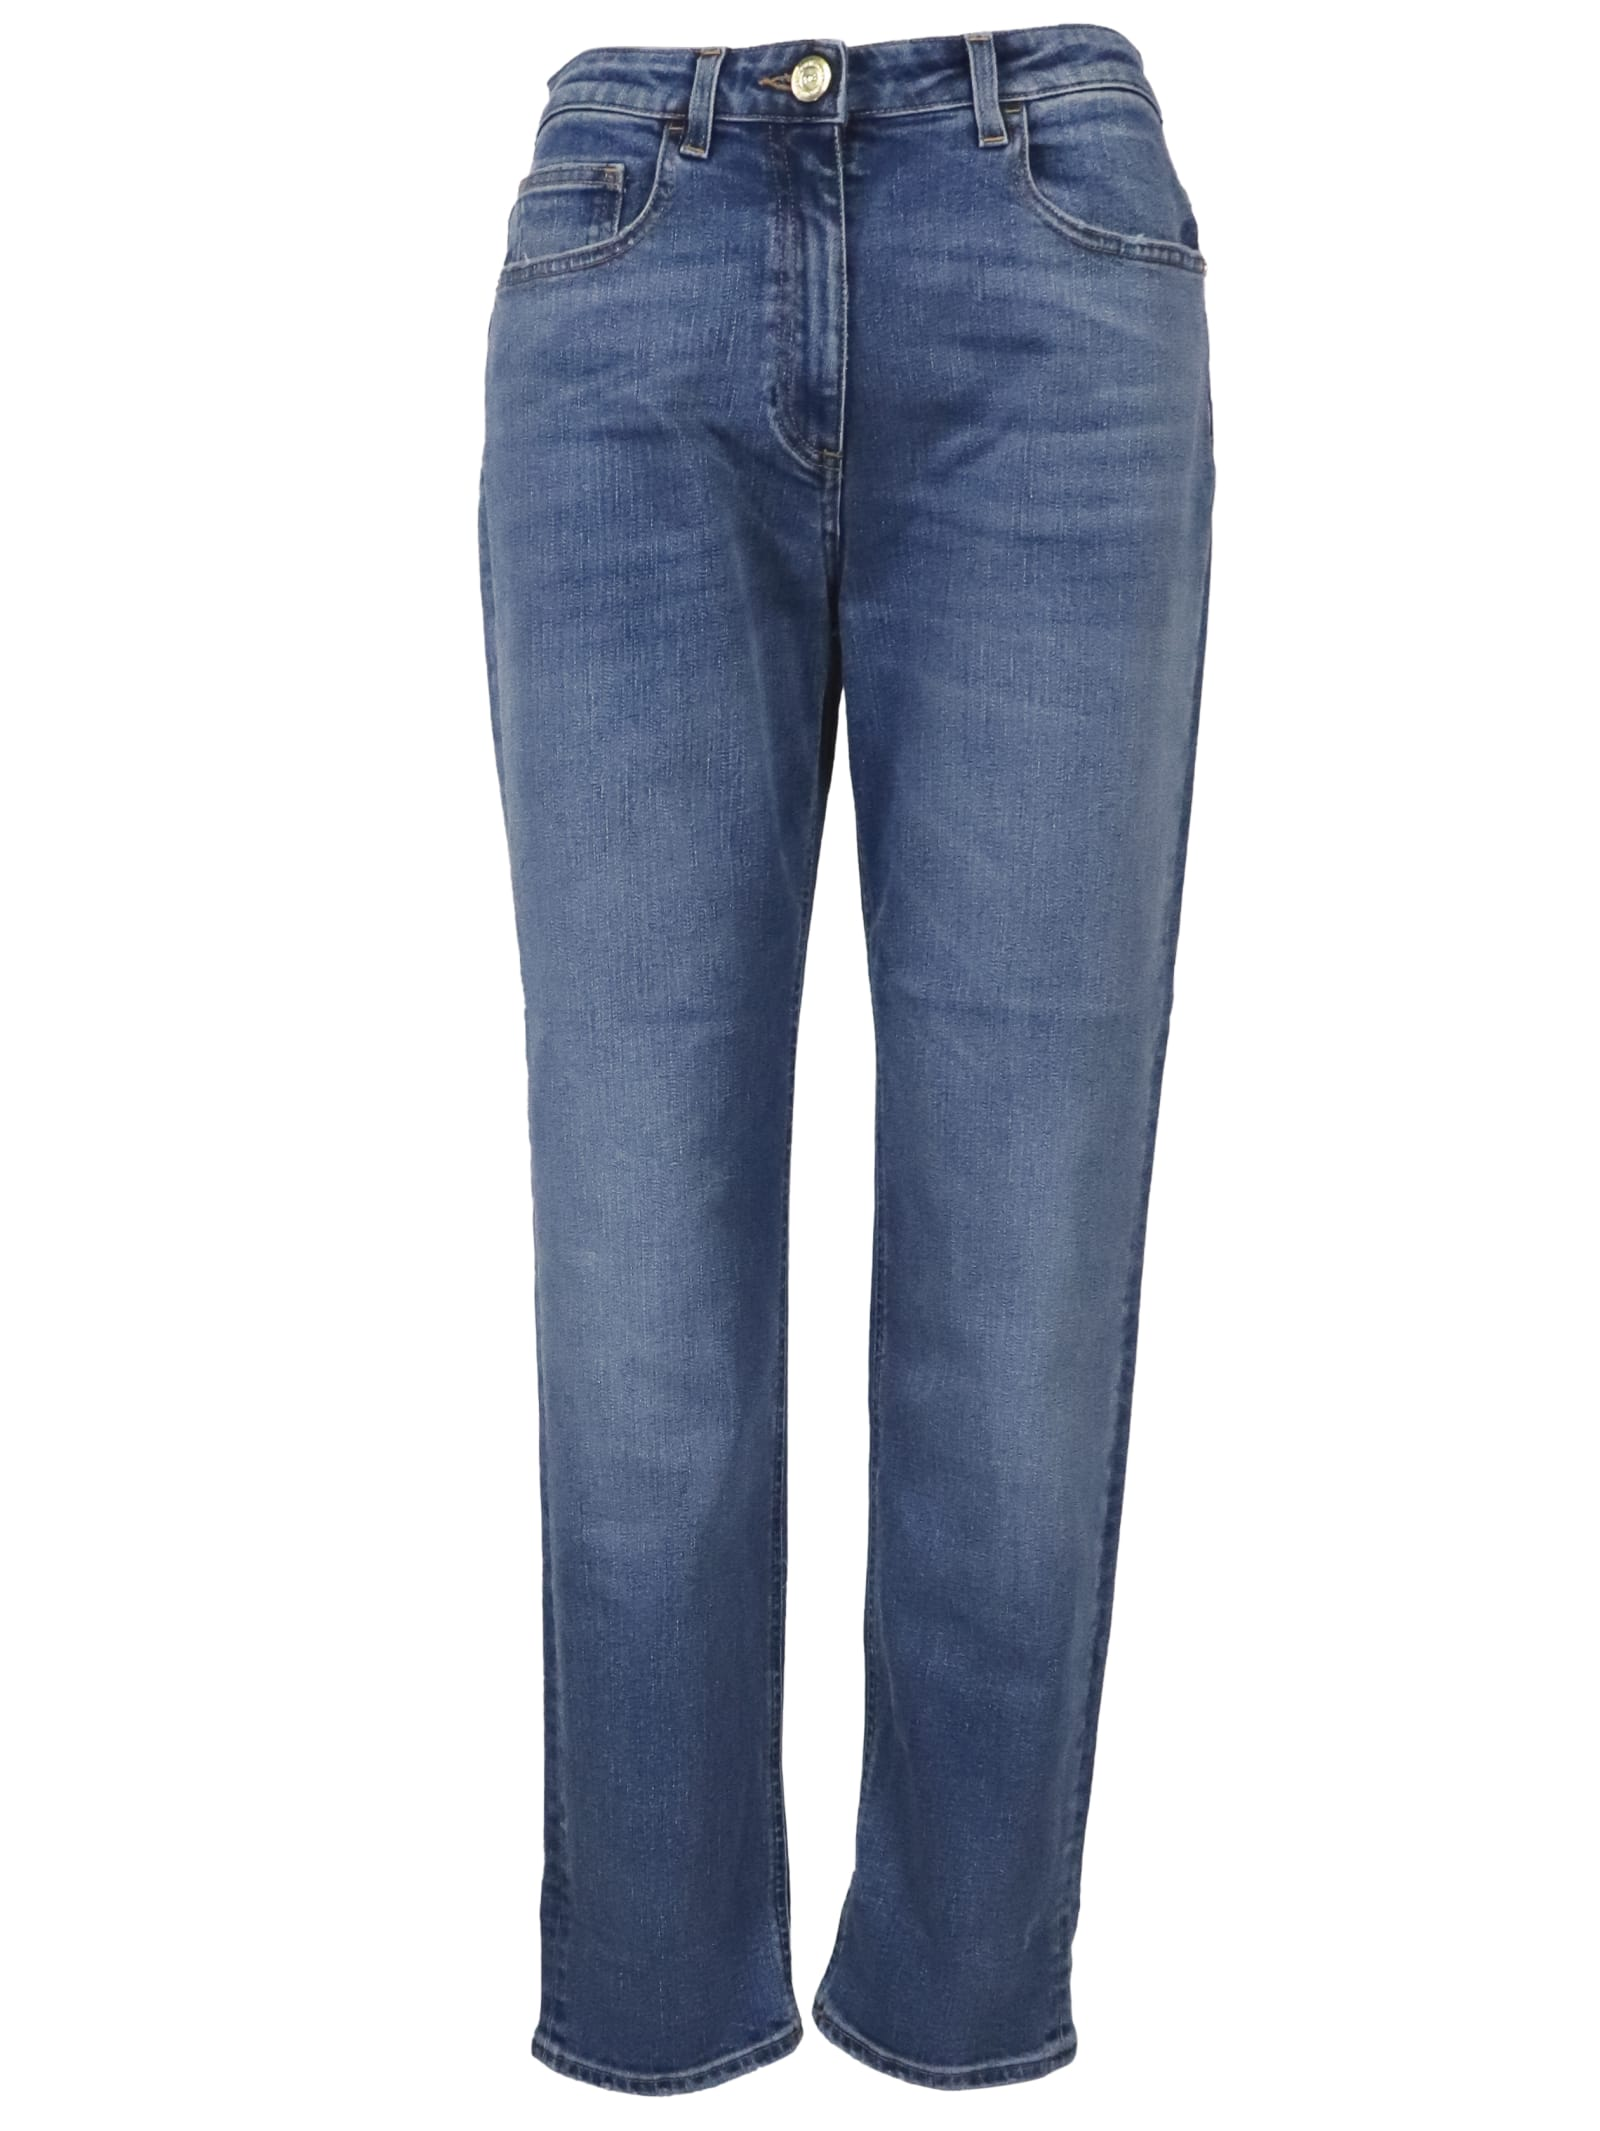 Elisabetta Franchi Celyn B. Light Blu Denim Jeans